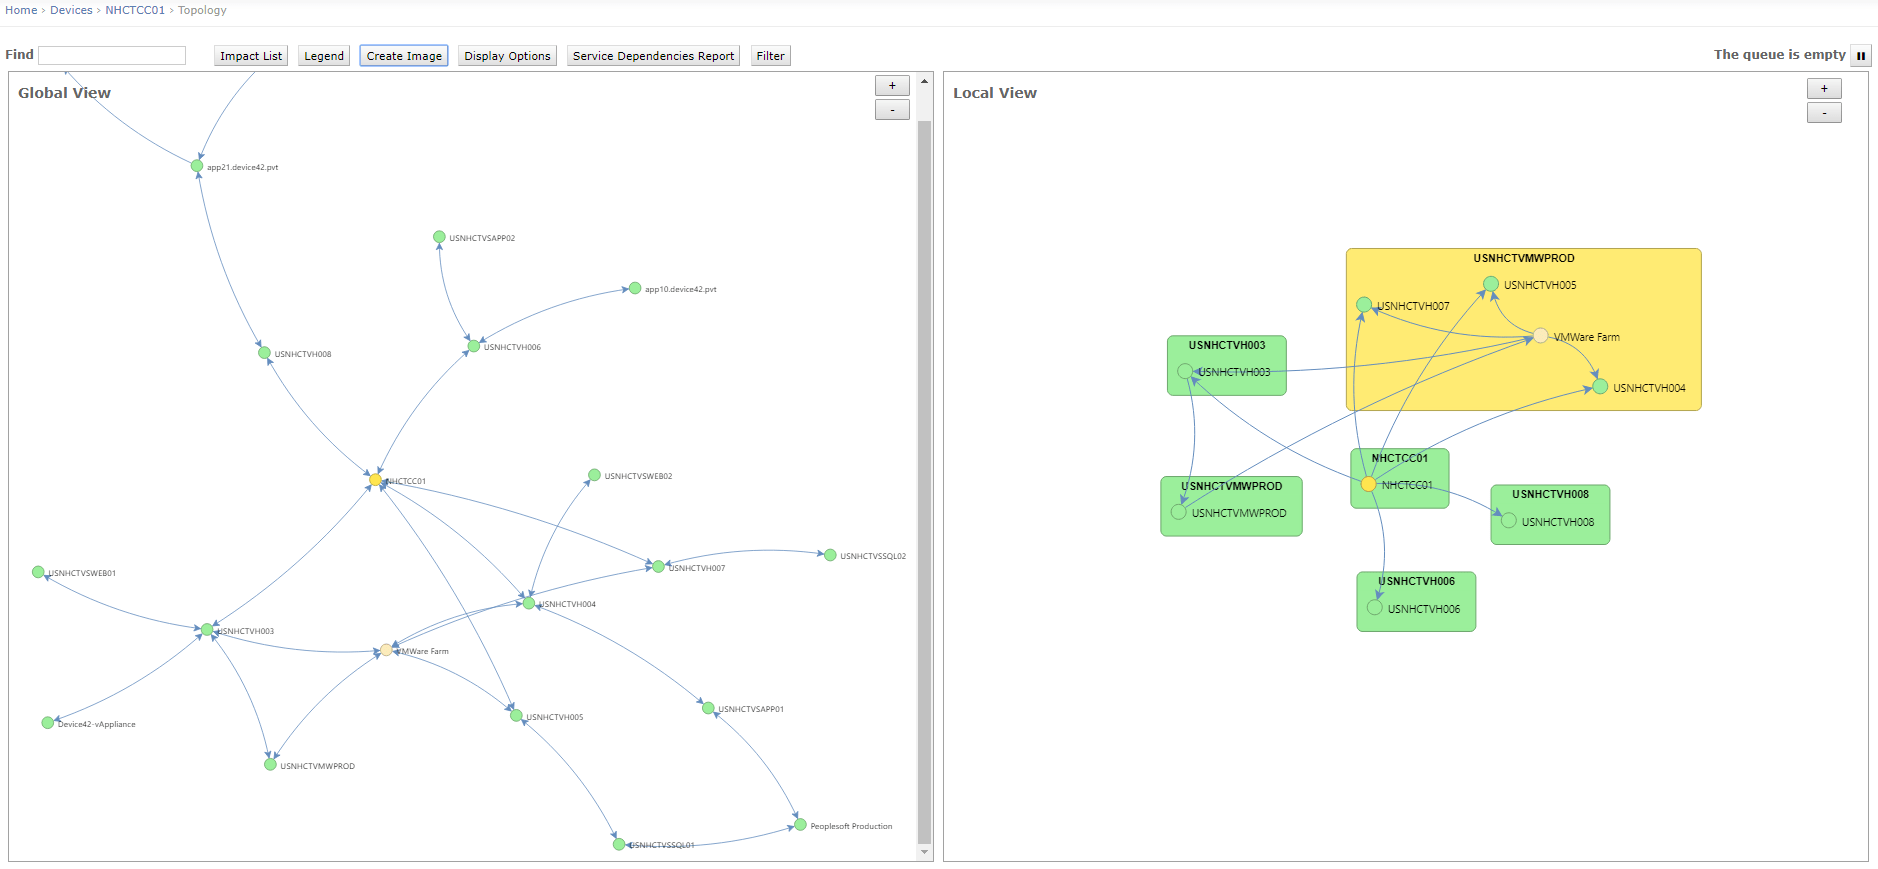 hight resolution of here s how you can get your favorite device42 diagram into your next visio